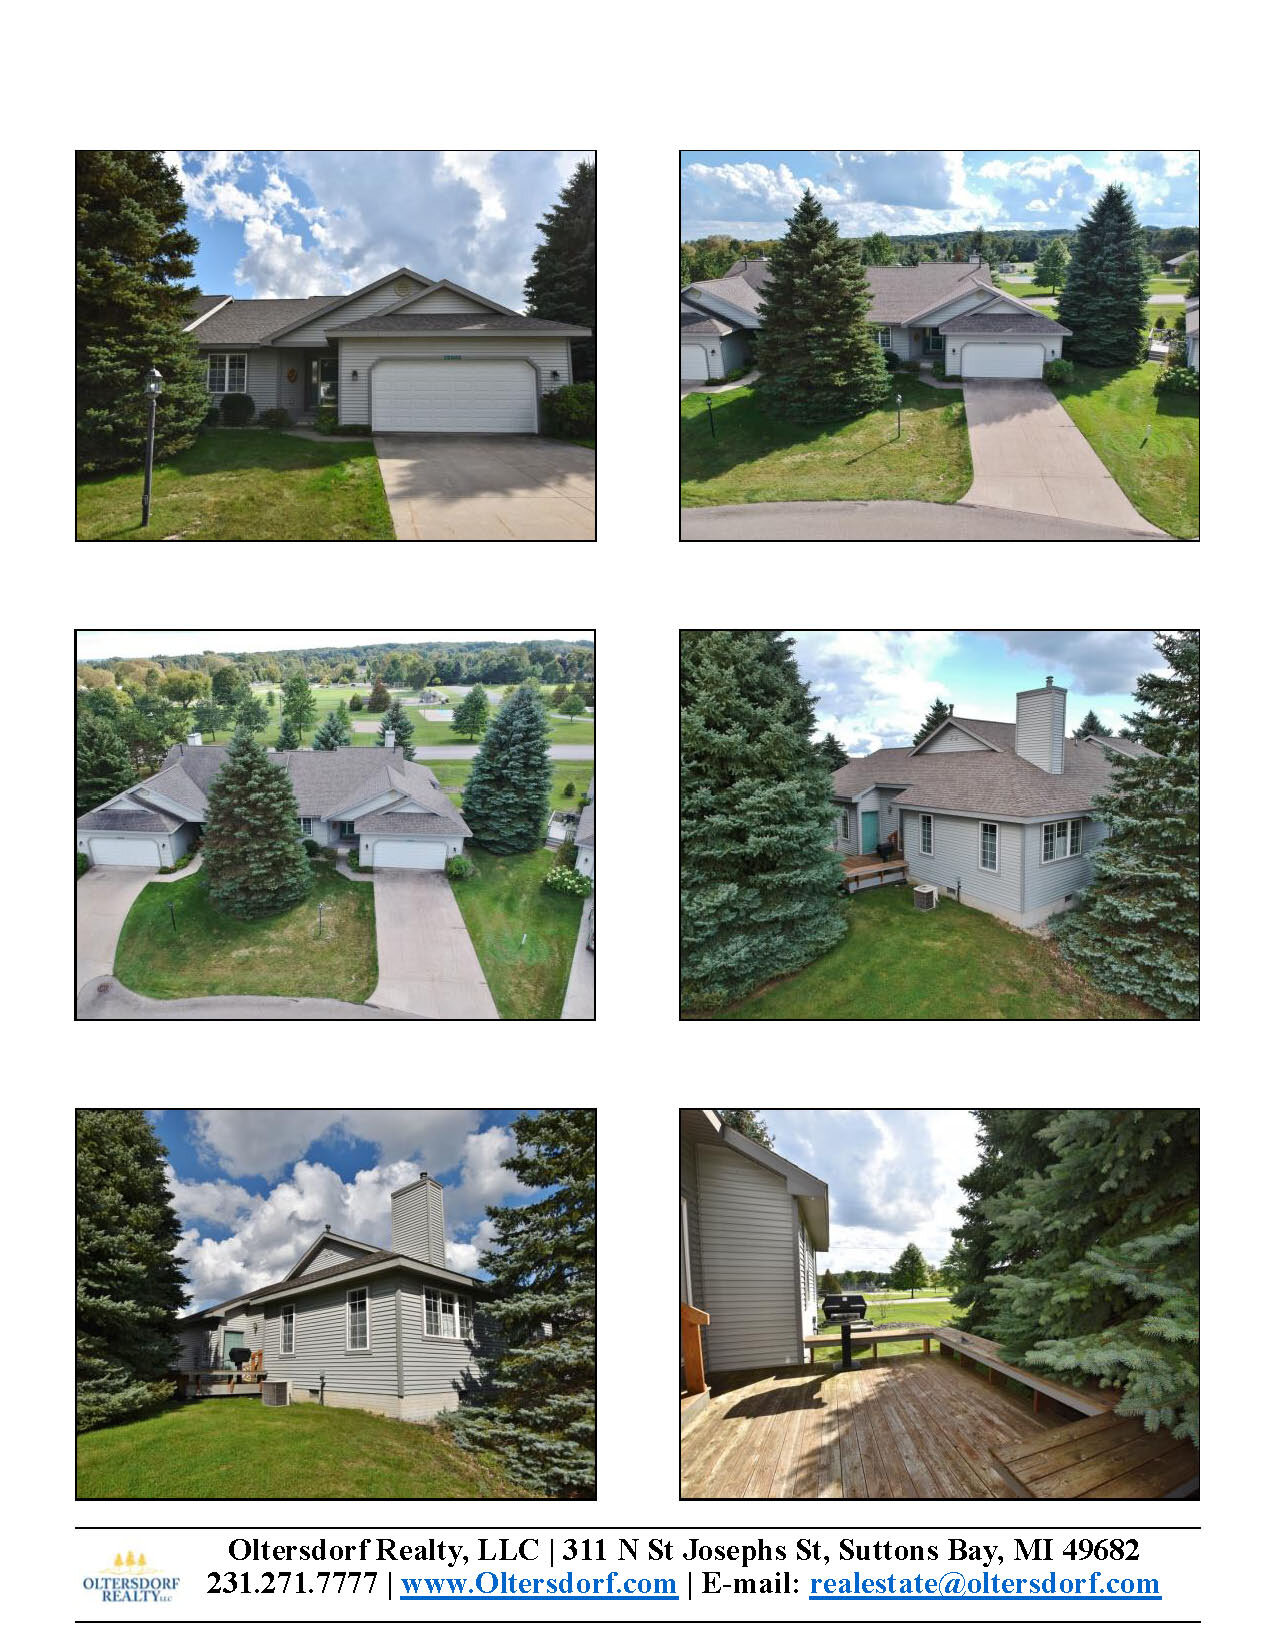 12055 S Elk Run, Traverse City, MI – 2+ Bedroom, 2 Bath Cedar Creek Condominium - Marketing Packet_Page_02.jpg